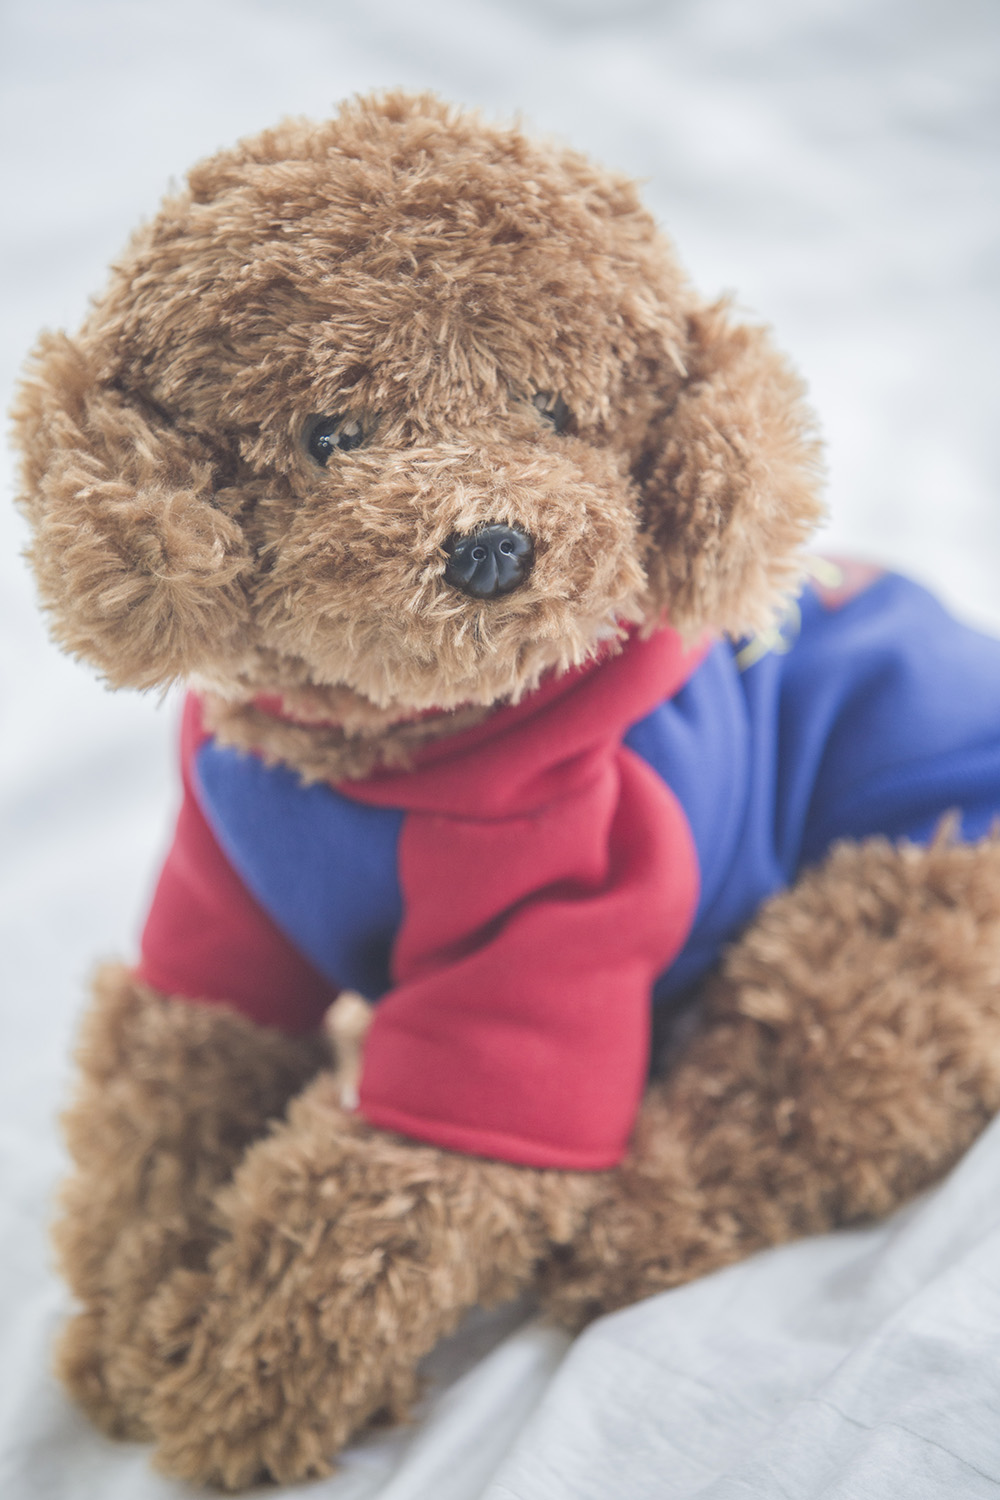 Cute Poodle Stuffed Toy Animal Plush Toy Soft Doll Children Gift